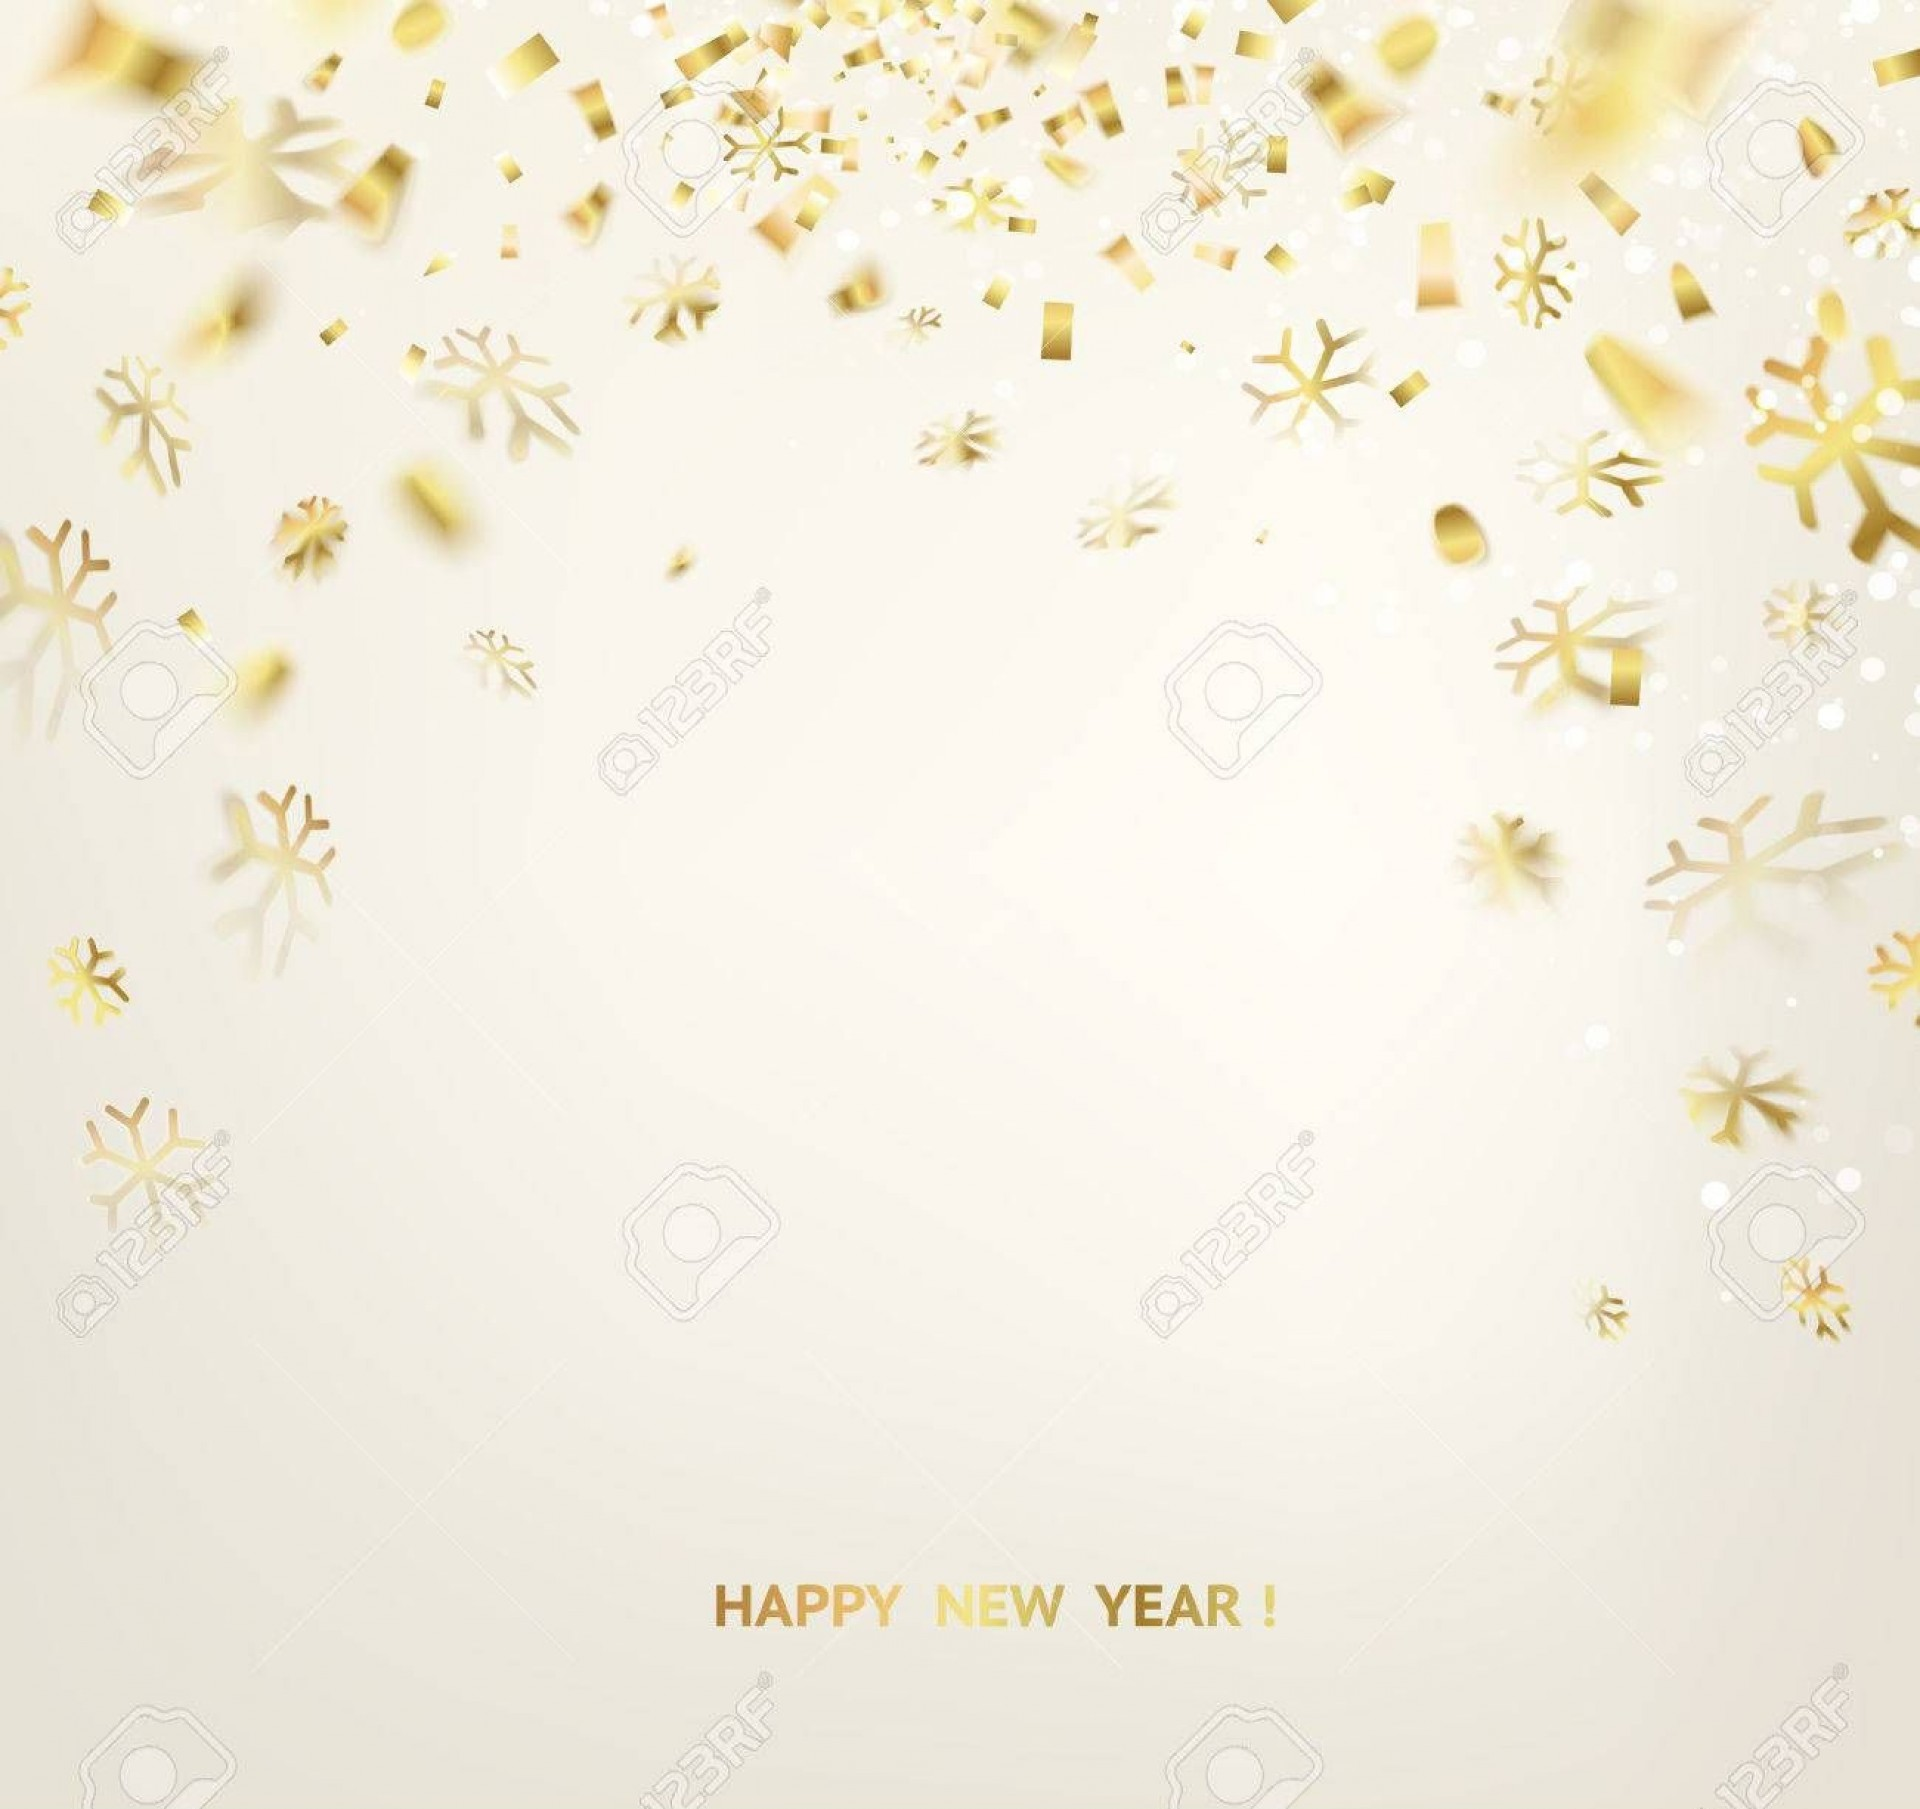 002 Wondrou New Year Card Template High Def  Happy Chinese 2020 Free1920